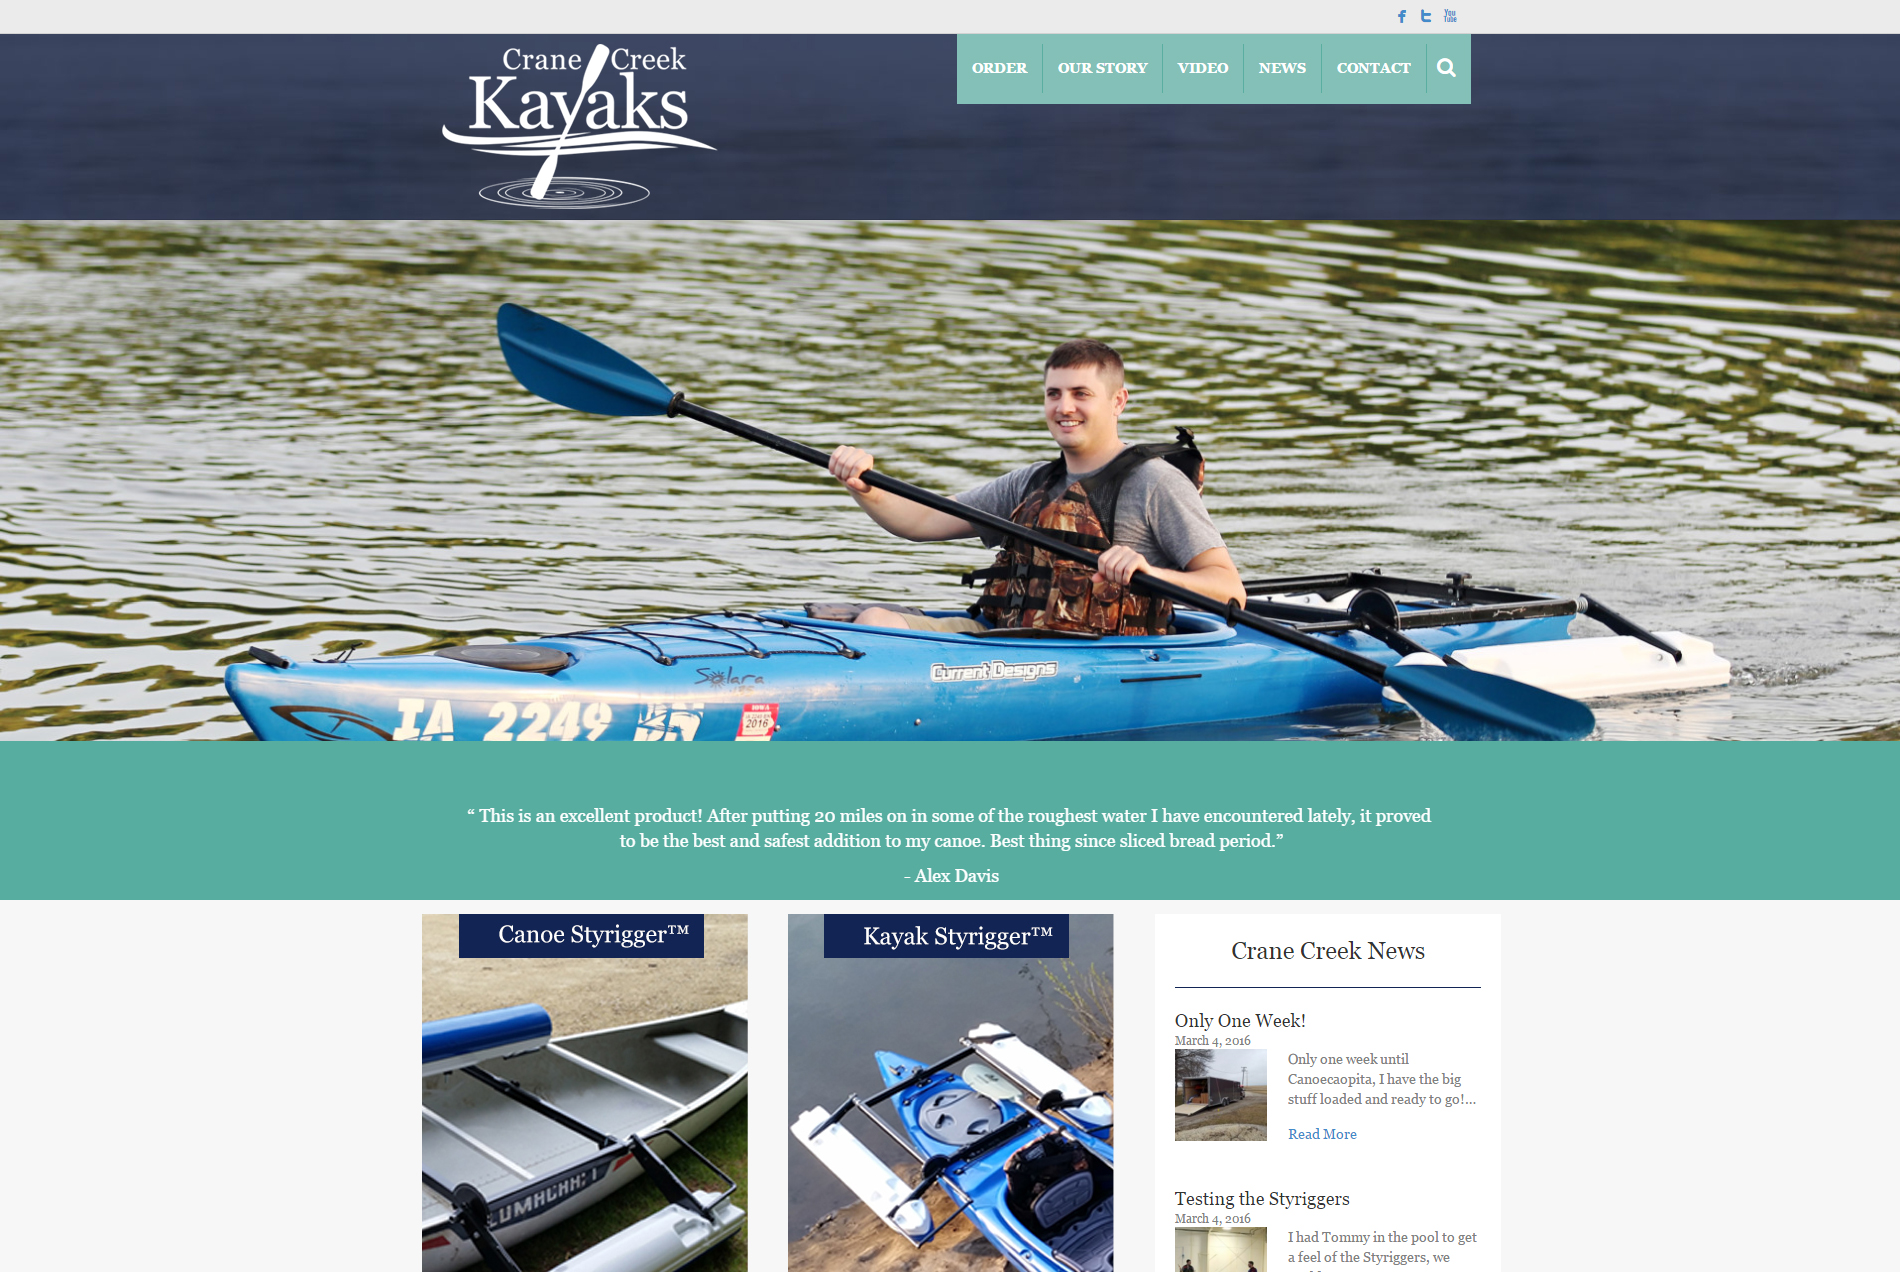 Crane Creek Kayaks - Website